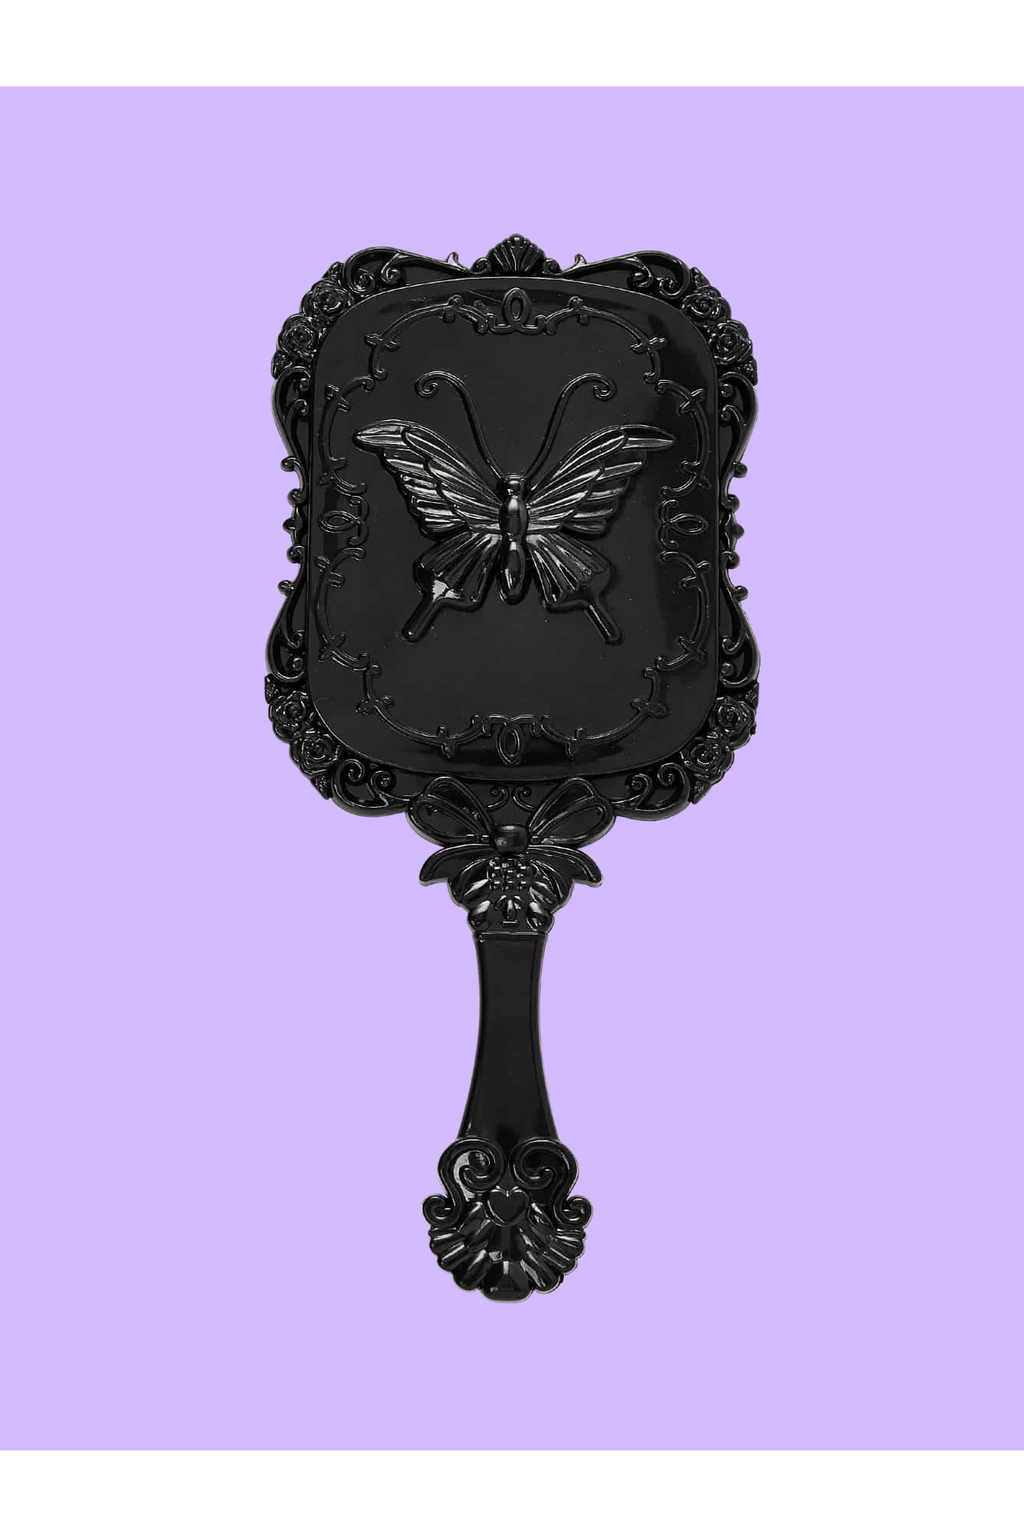 Nocturnal Black Handheld Mirror